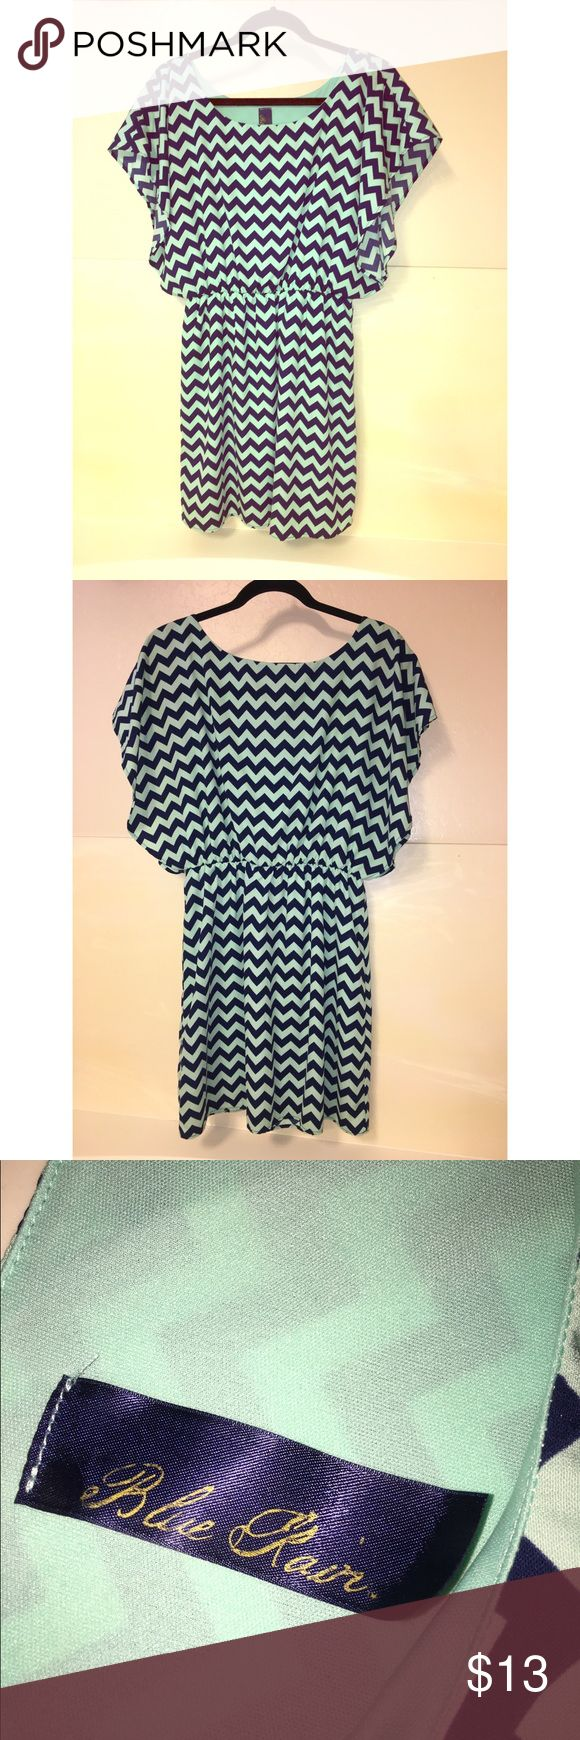 Navy and mint chevron dress Adorable and comfy dress. Fully lined. Super flattering! 🎀great offers accepted🎀 Blue Rain Dresses Mini